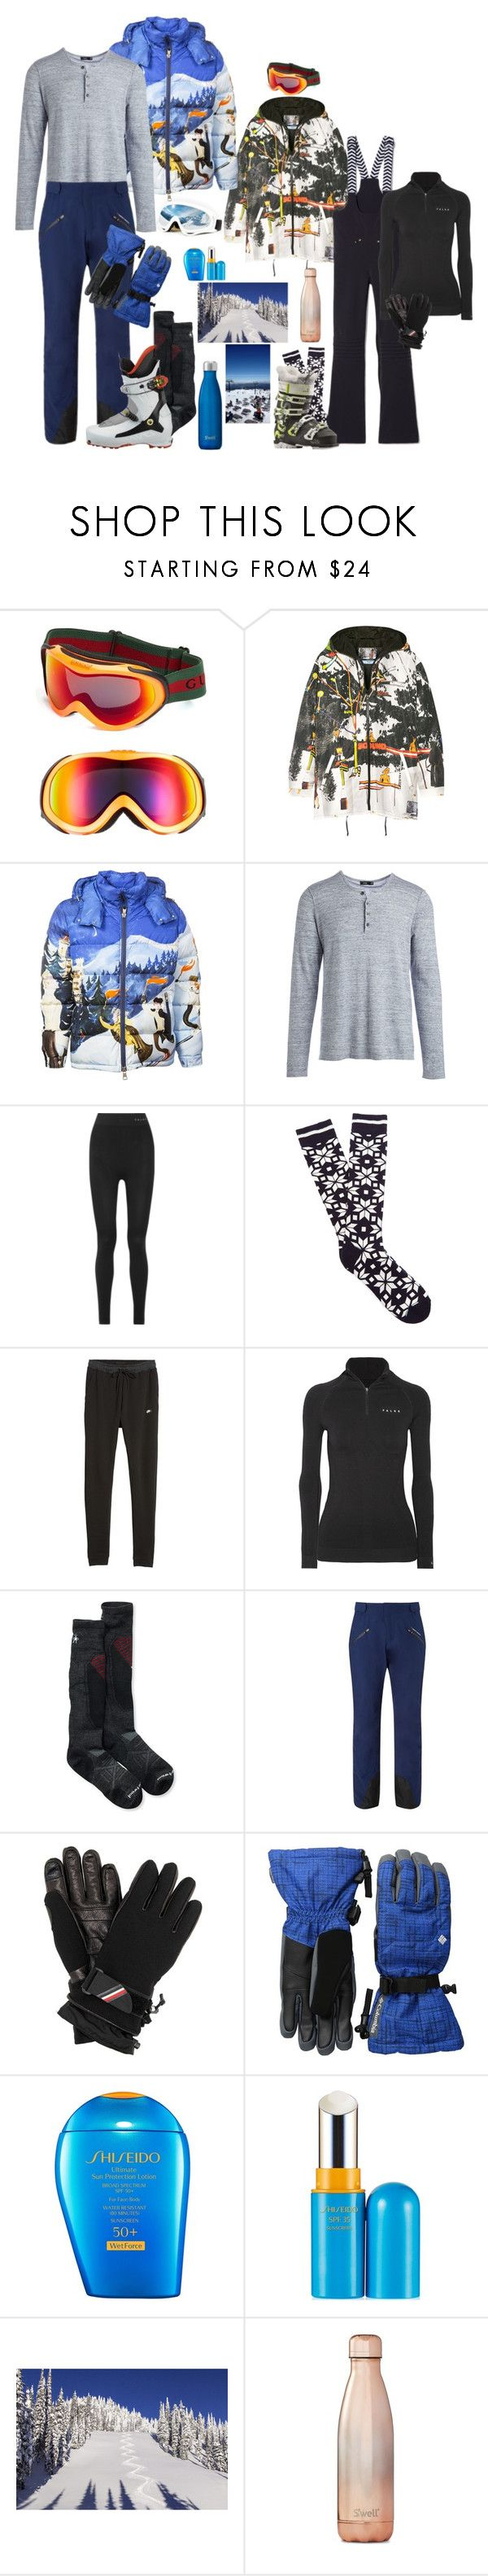 """Skiing trip 🎿⛷"" by fieldnotes ❤ liked on Polyvore featuring Gucci, Prada, Moncler, Vince, Falke, Fusalp, Isolá, NIKE, Smartwool and Rossignol"